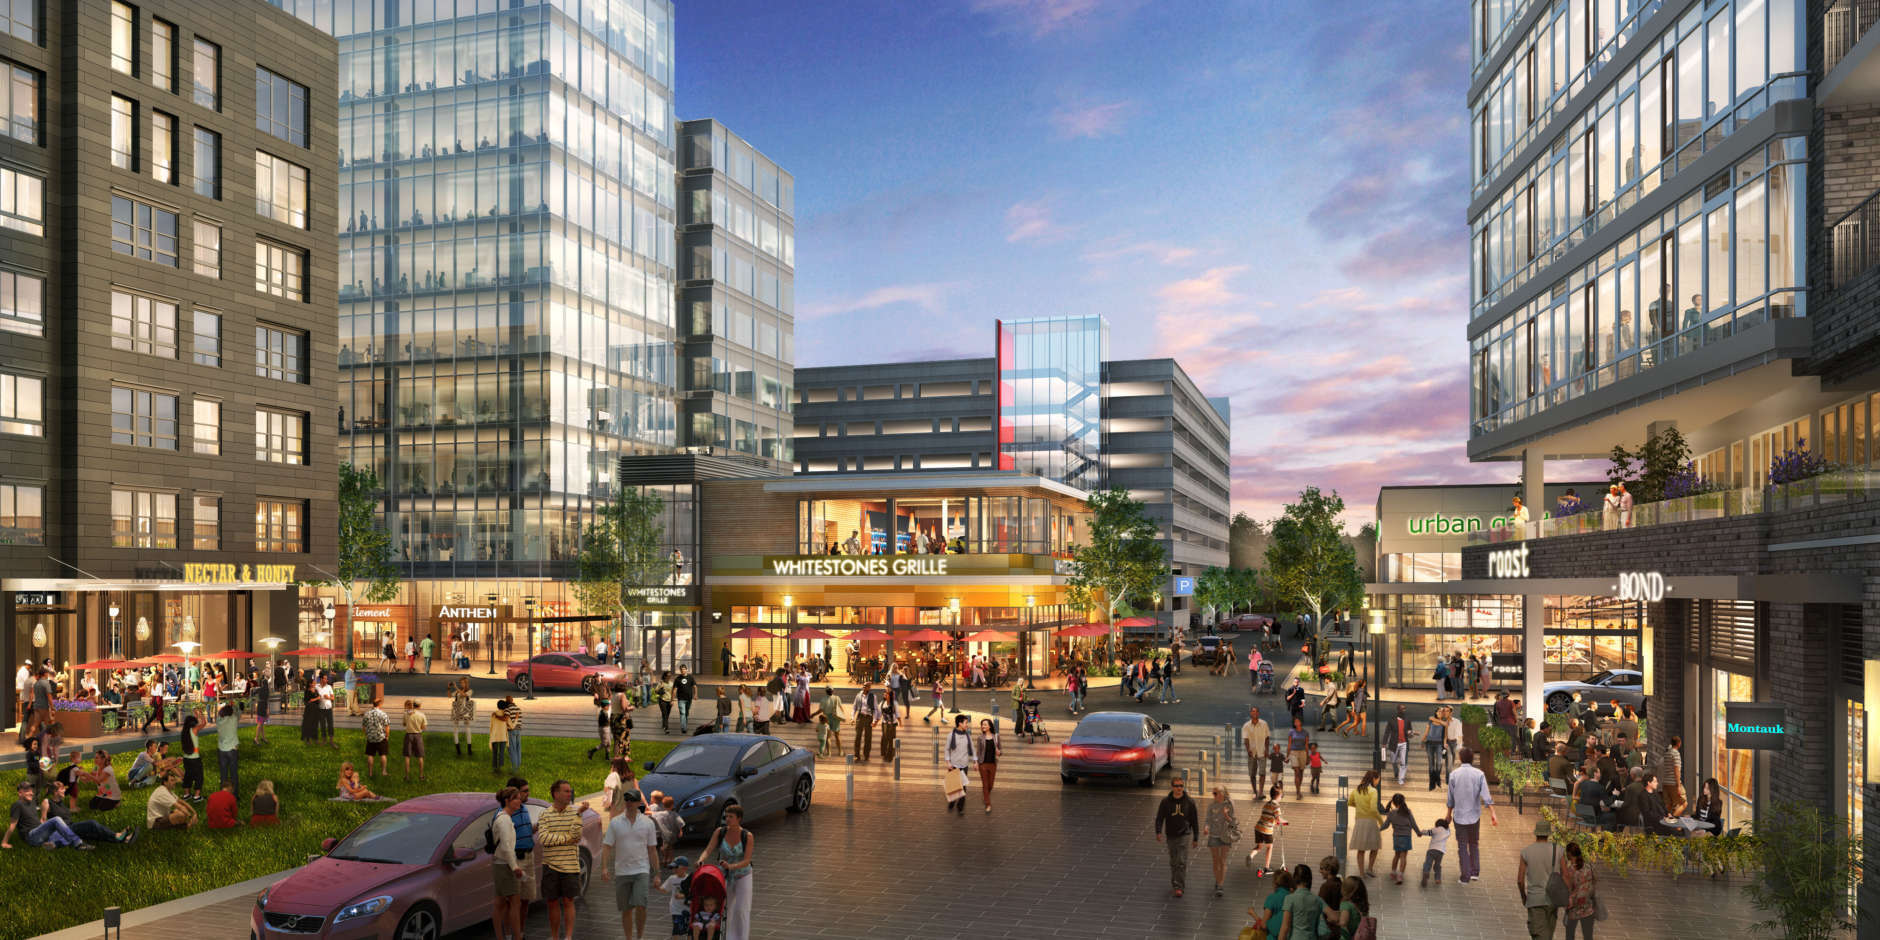 Final build-out is still about 20 years away, but when complete, the Downtown Columbia revitalization, approved by Howard County in 2010, will include 14 million square feet of mixed-use development comprised of 4.3 million square feet of commercial office space, 1.25 million square feet of street retail, more than 6,200 residential units and about 650 hotel rooms. (Courtesy Howard Hughes Corporation)